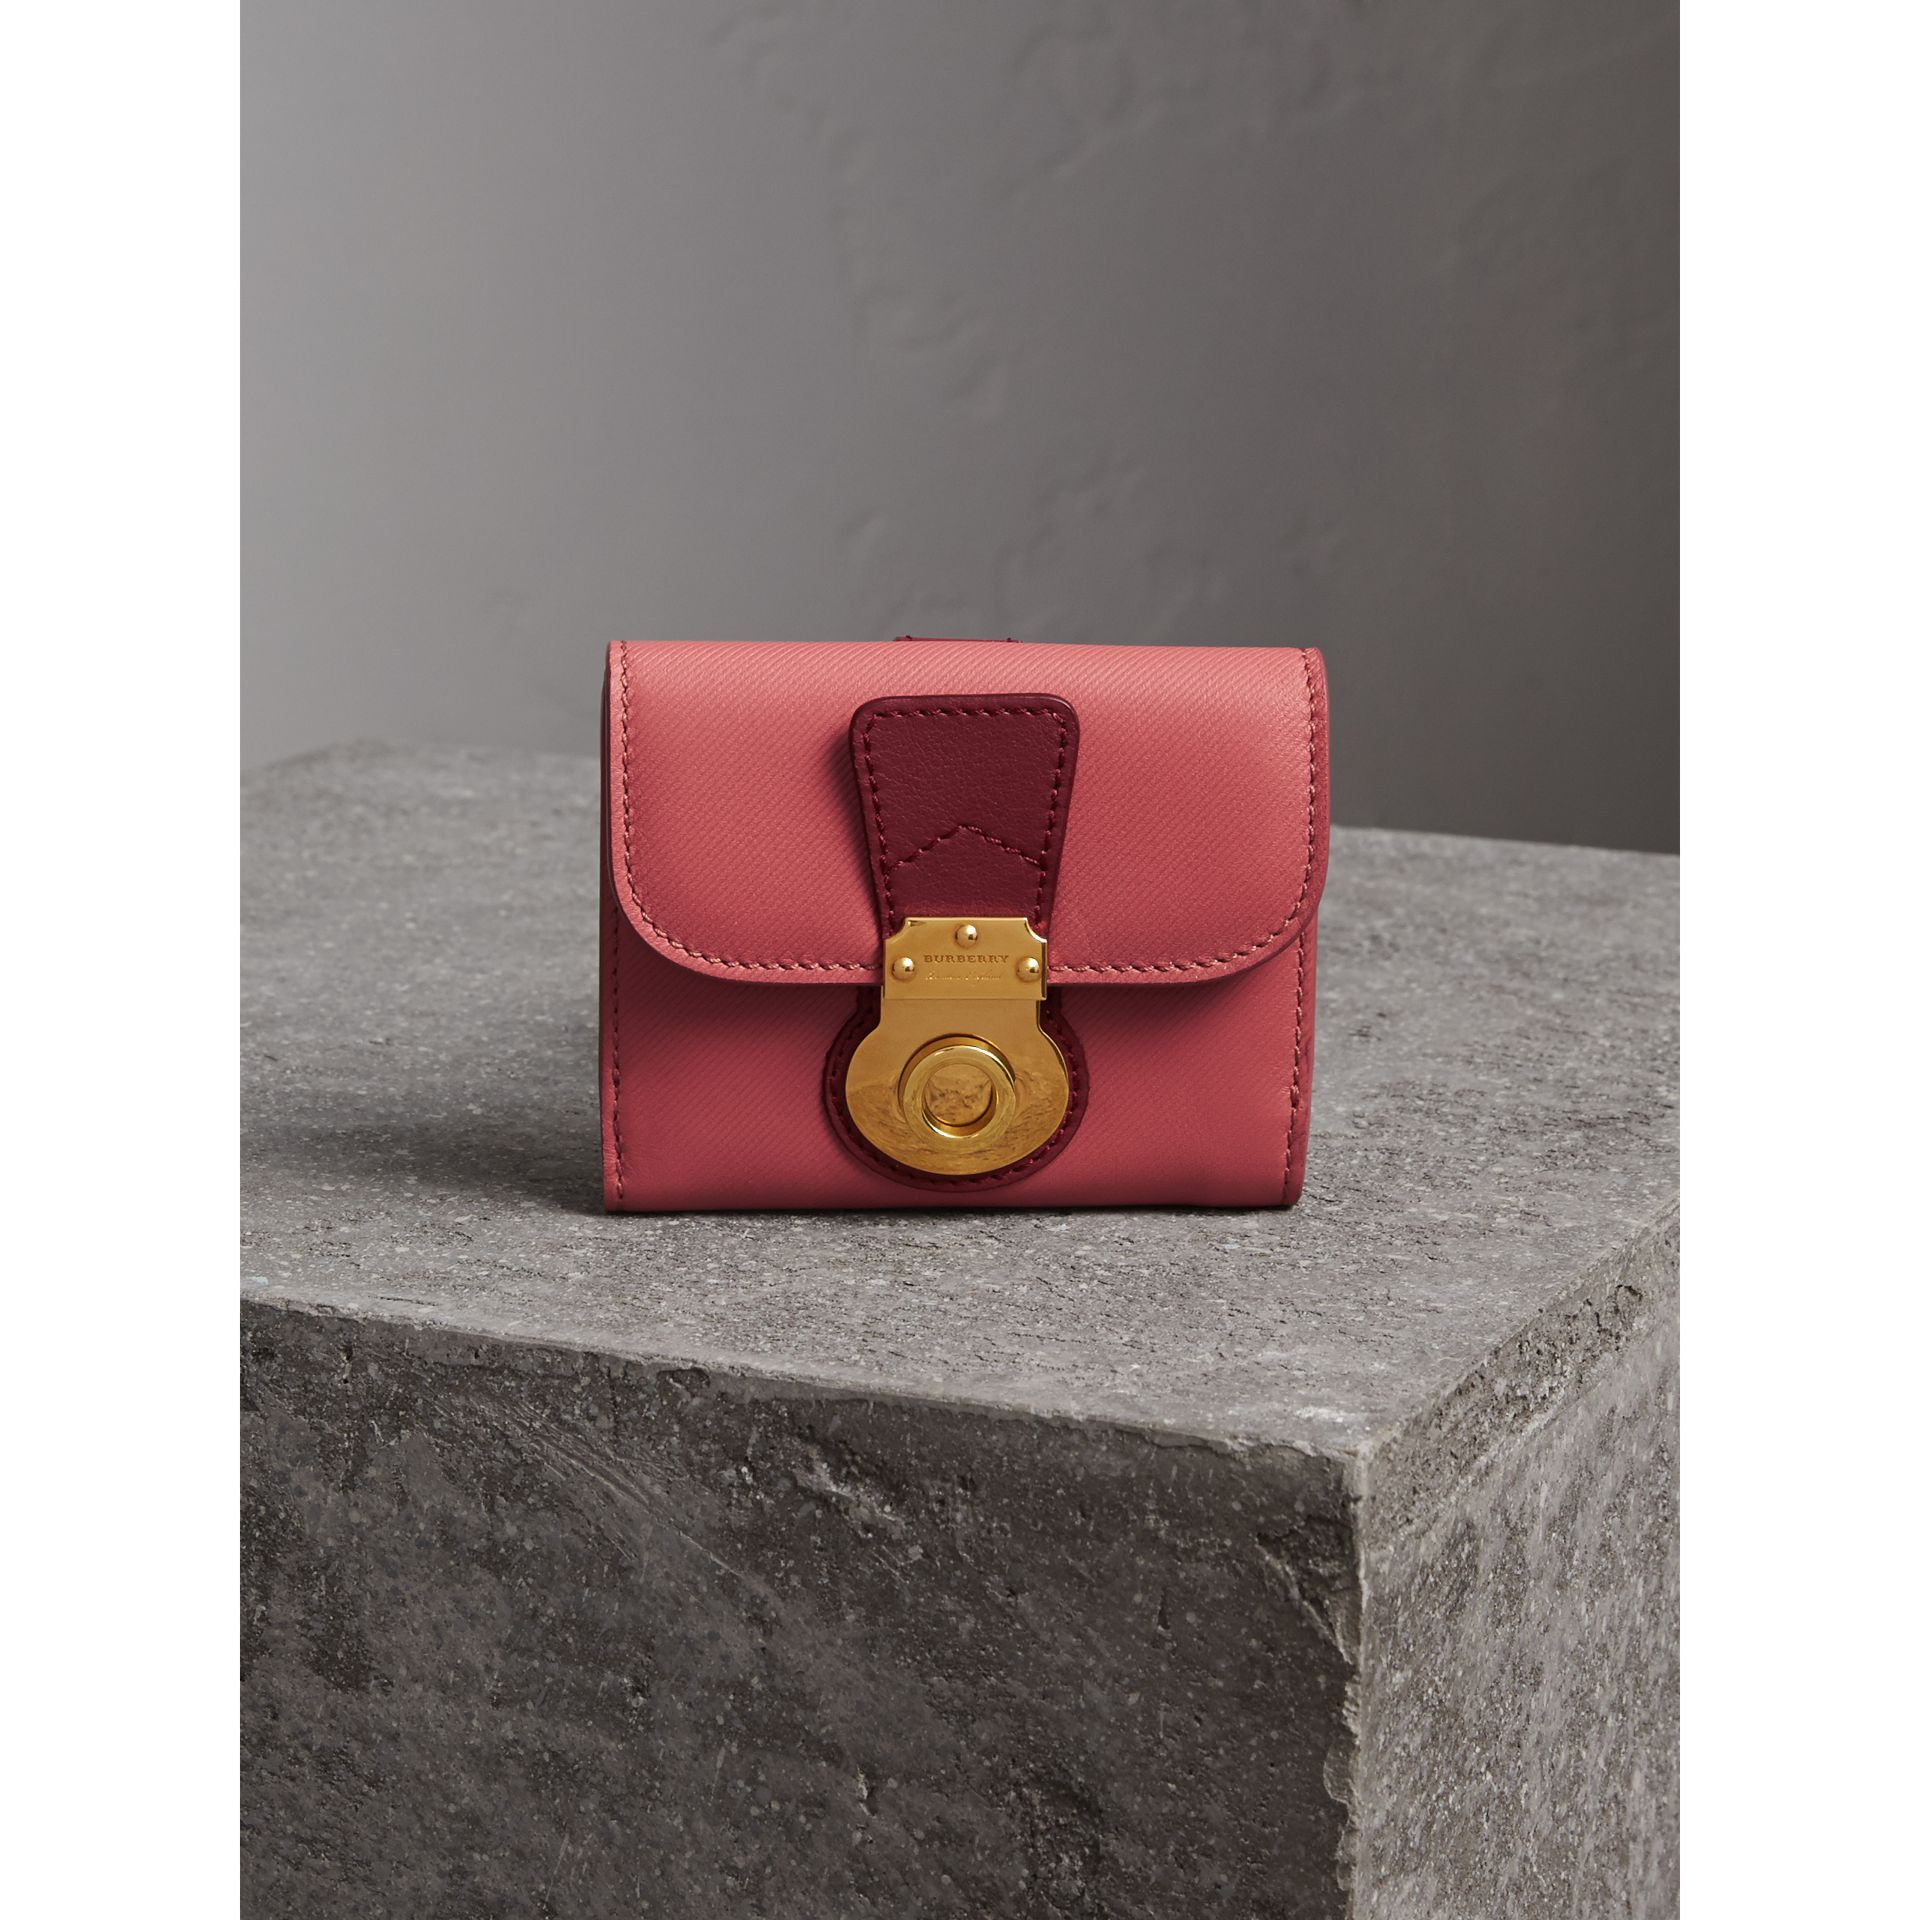 Two-tone Trench Leather Wallet in Blossom Pink/ Antique Red - Women | Burberry Canada - gallery image 5